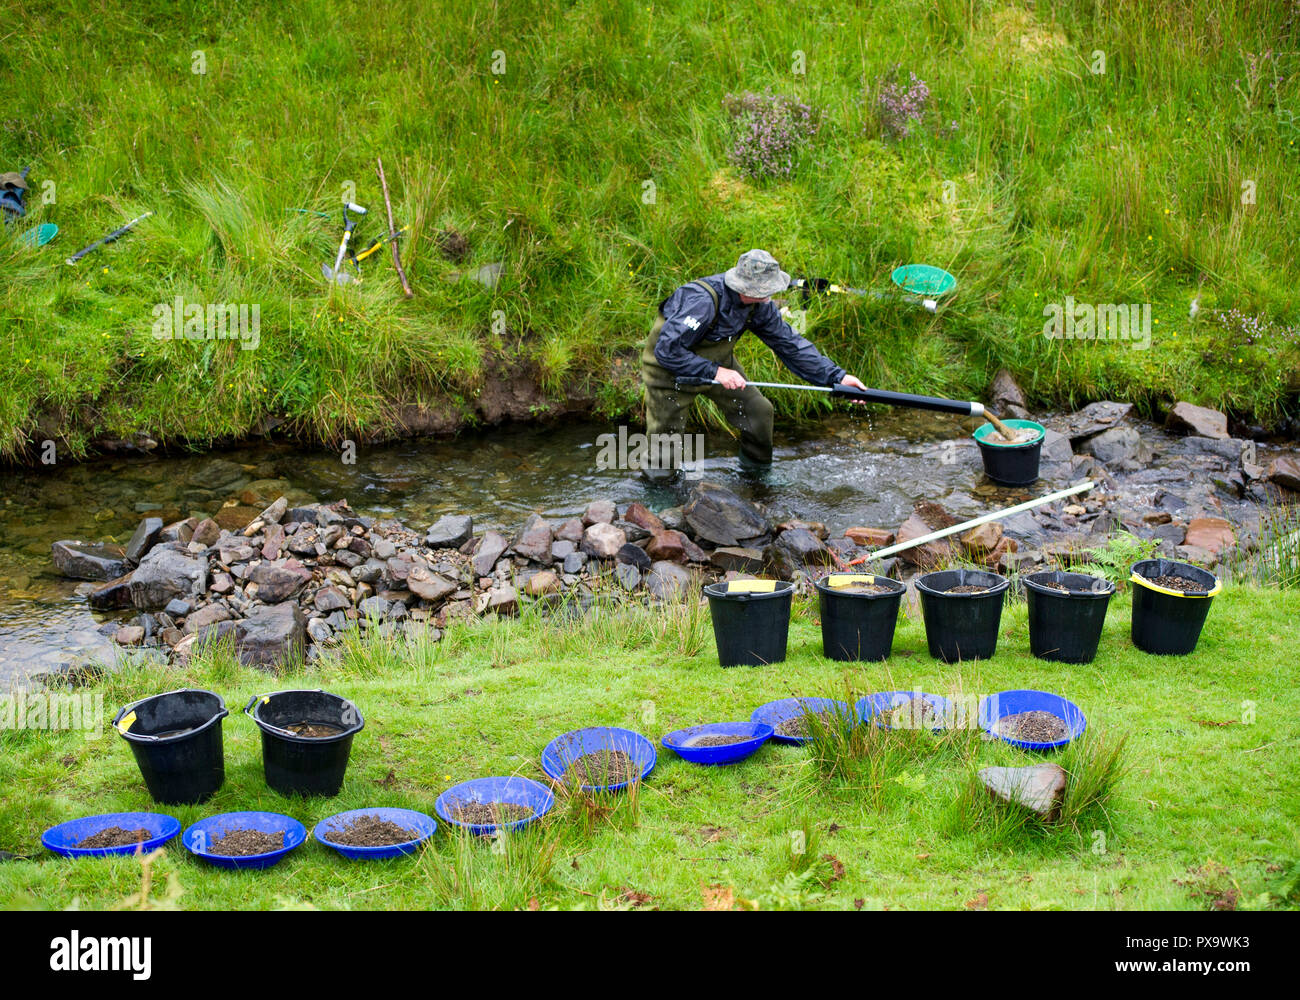 Gold panning course for visitors and tourists on the Mennock water near Wanlockhead, Scotland. - Stock Image